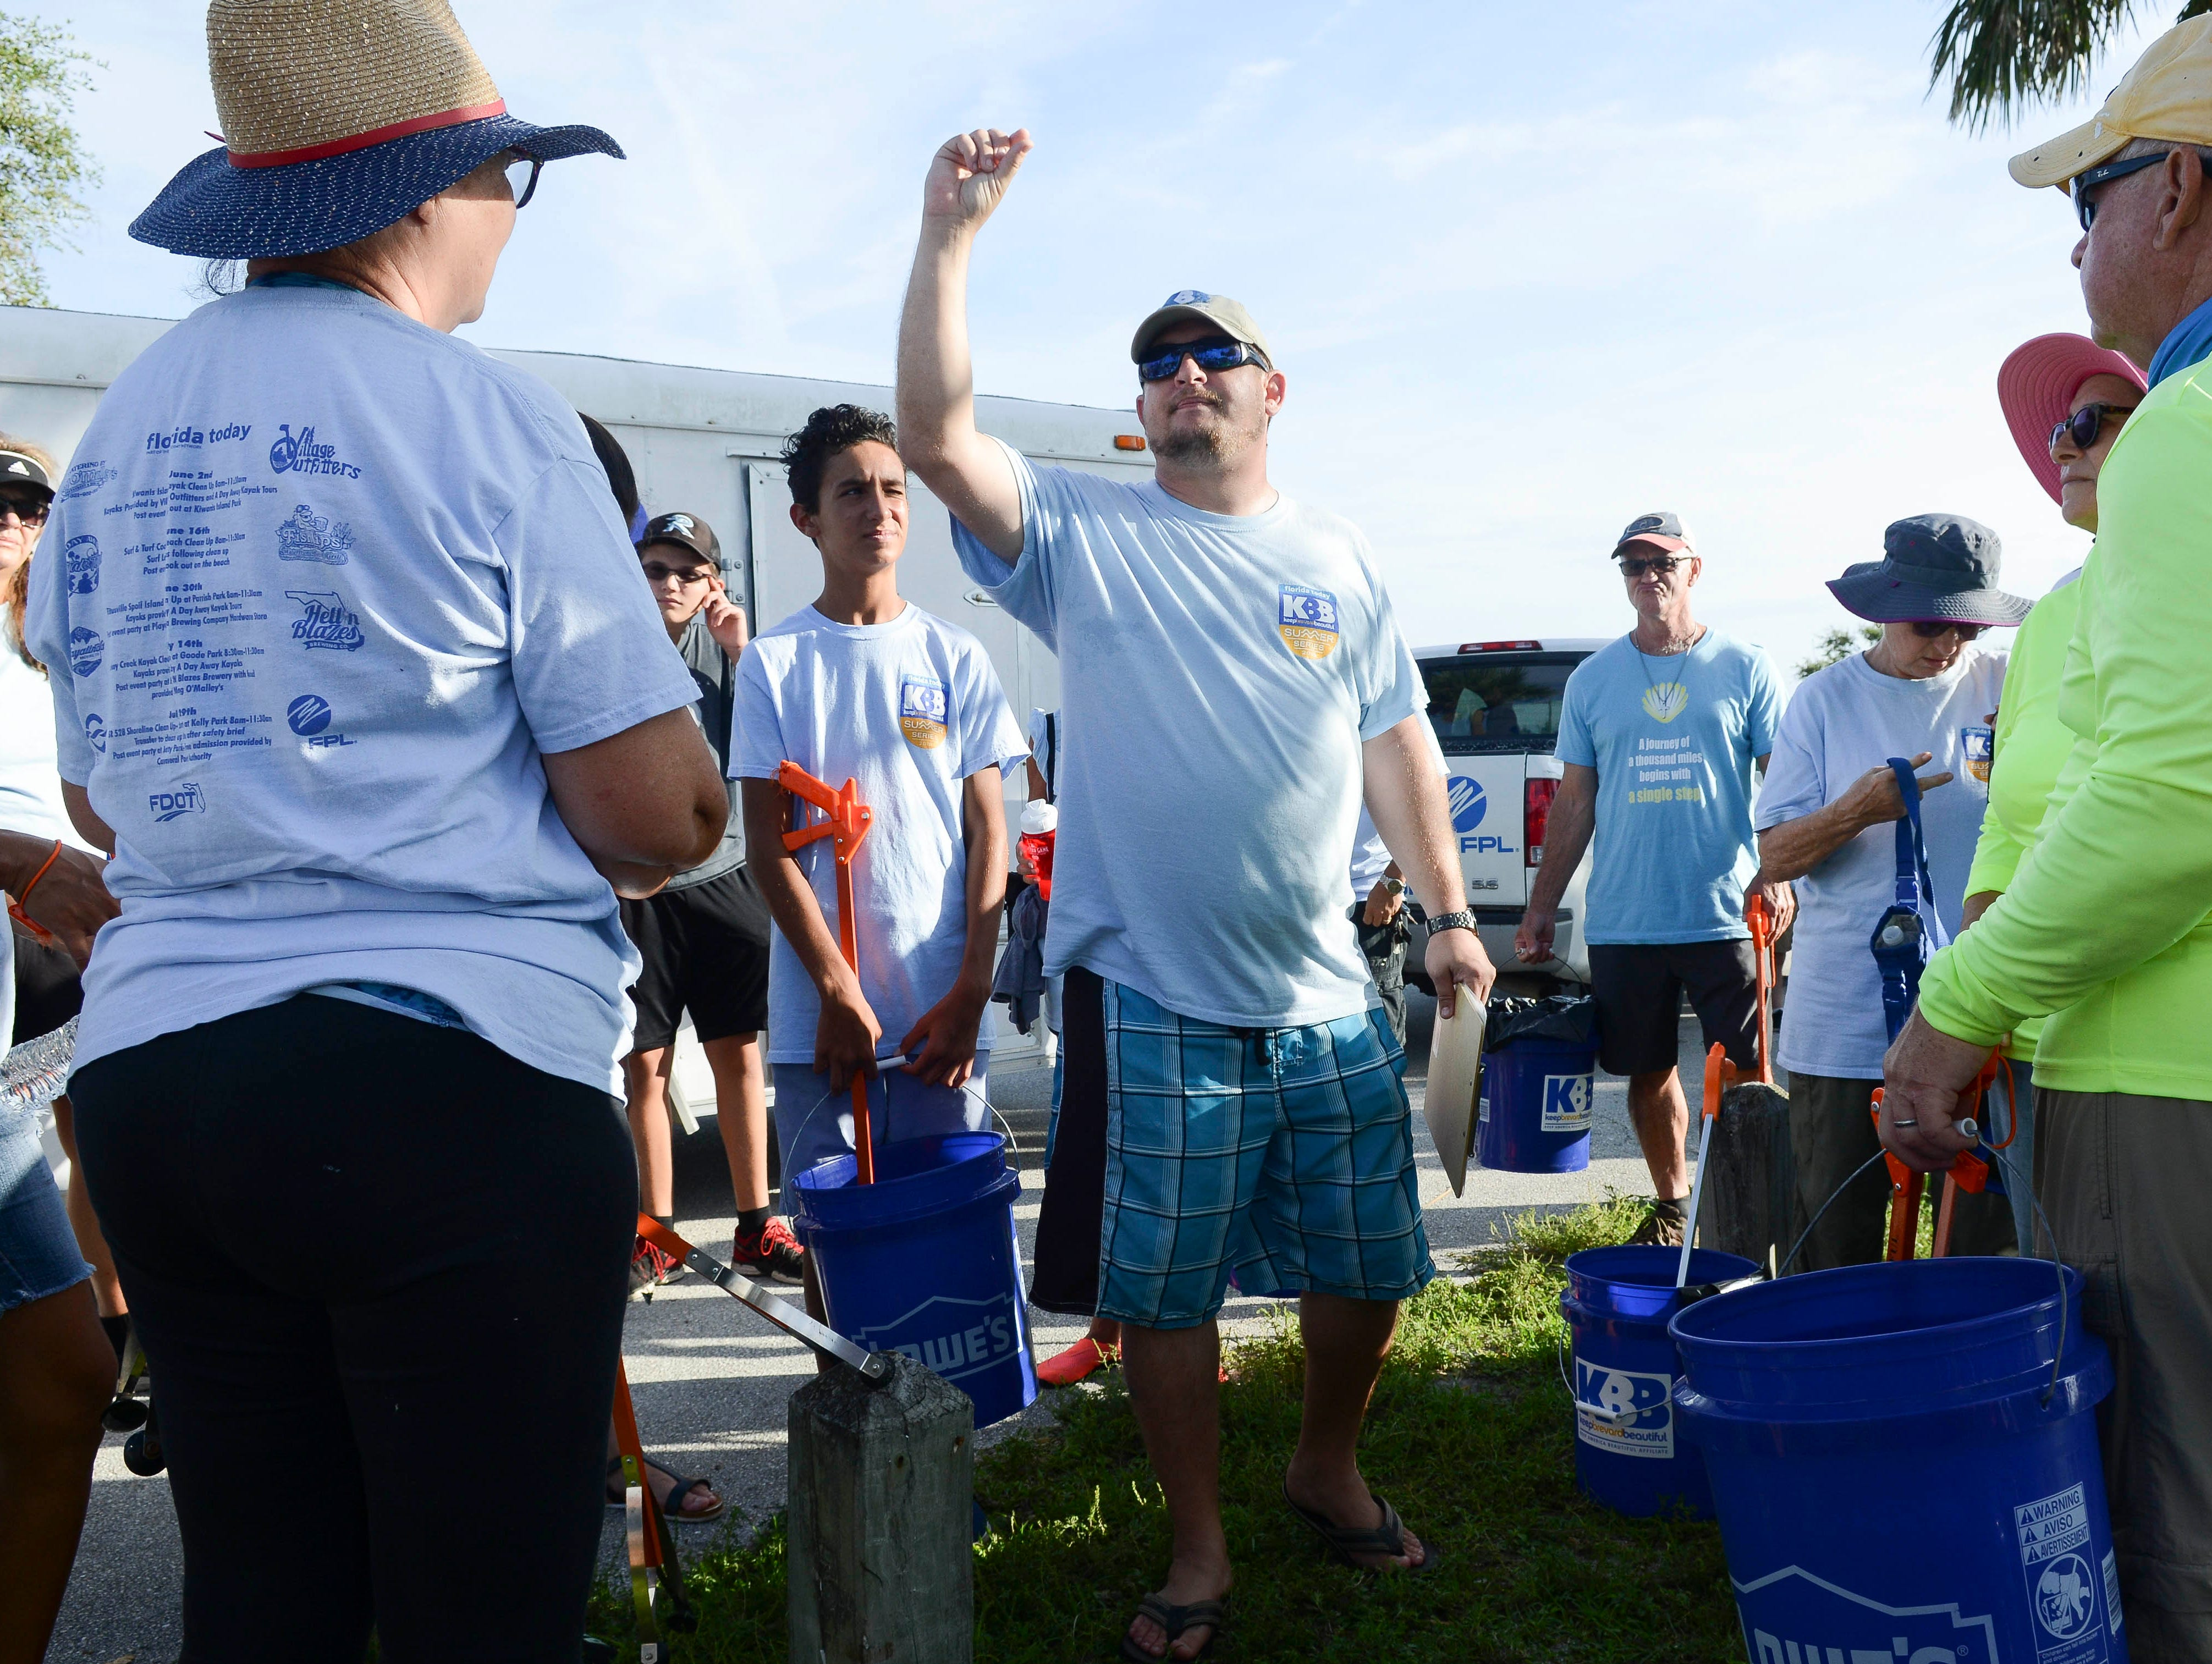 Bryan Bobbitt of Keep Brevard Beautiful directs the crowd at Kelly Park East in Merritt Island Saturday. This was the final stop of the Keep Brevard Beautiful/FLORIDA TODAY Summer Series cleanup